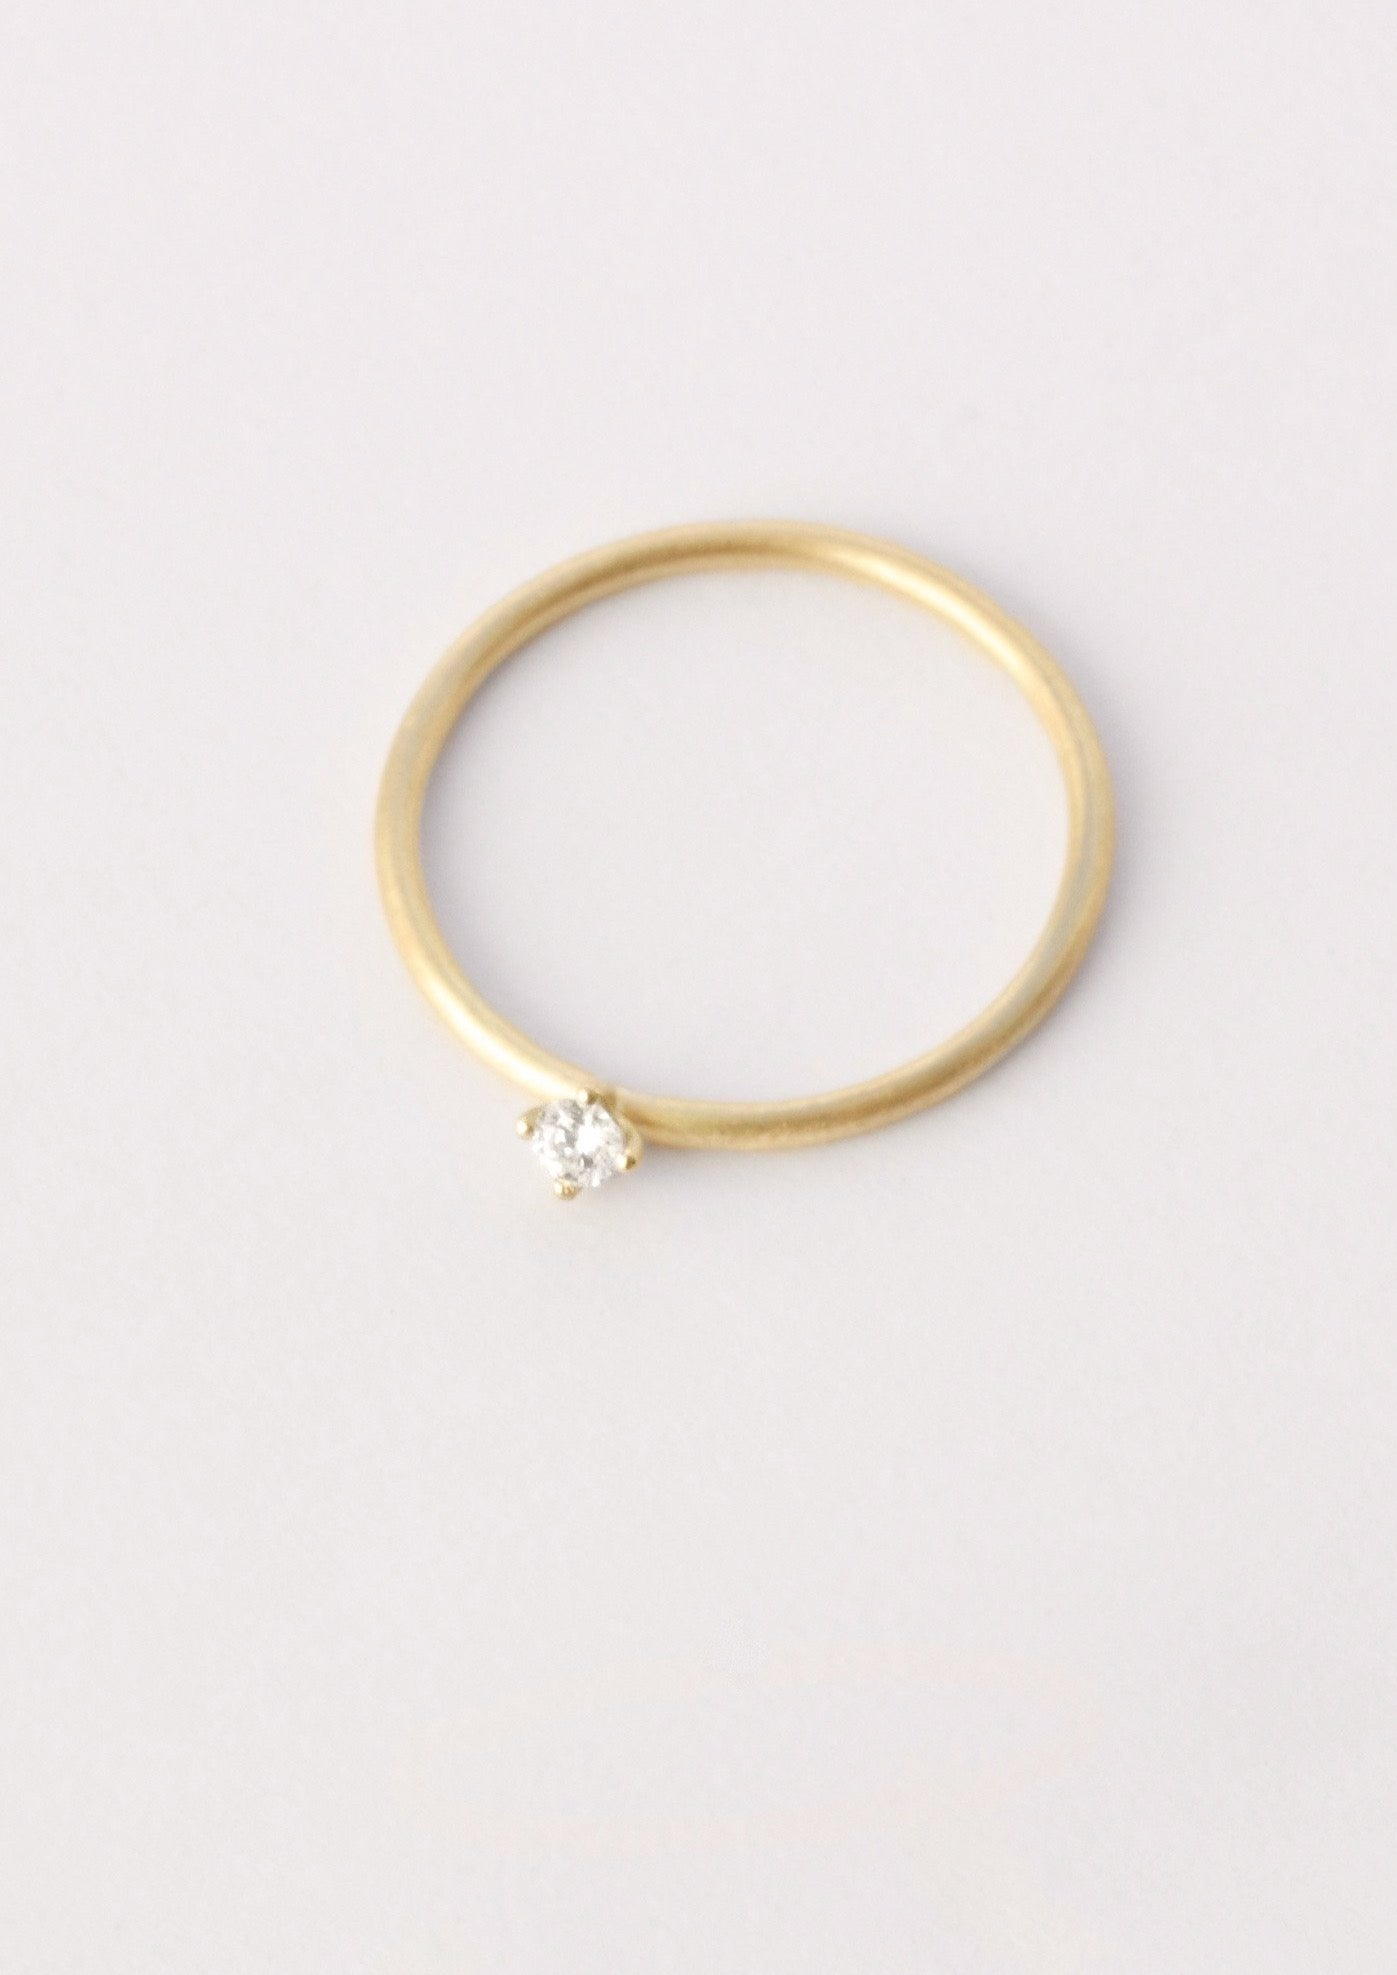 'Sakura Twist 0,05 ct' Fairtrade Gold Diamond Ring